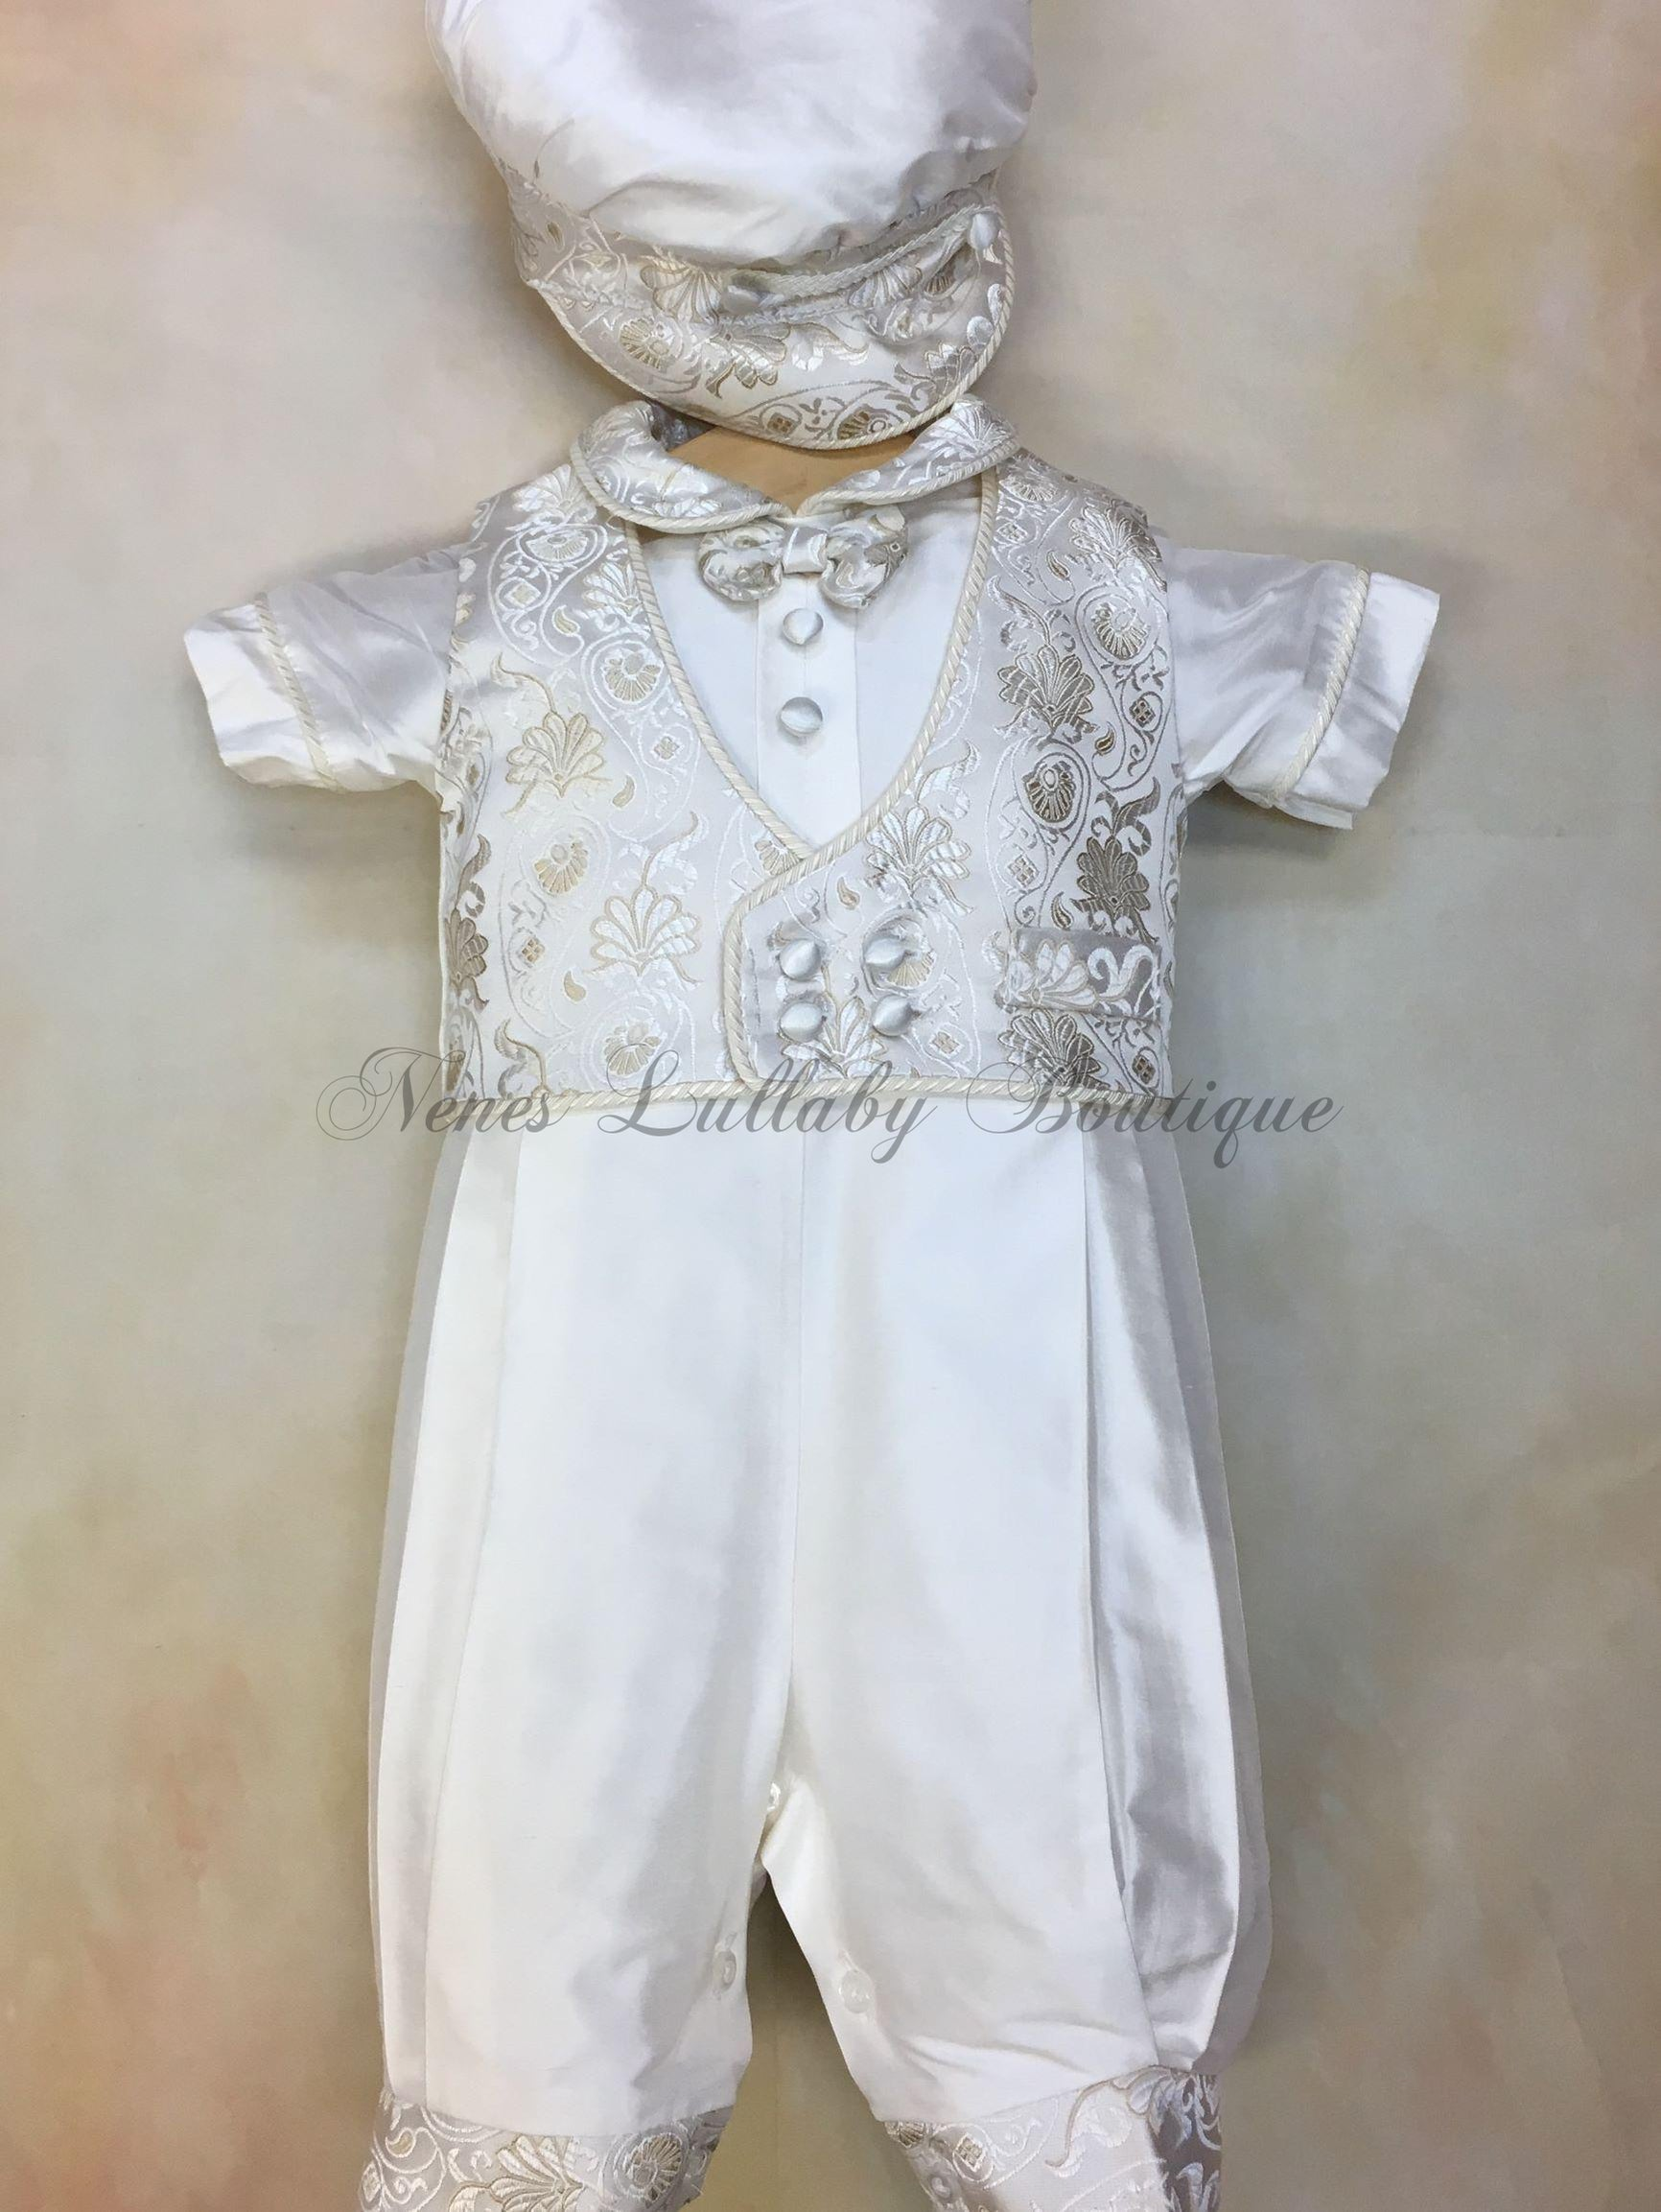 Piccolo Bacio Boyschristening outfit PB_Gianni_ws_ss - Nenes Lullaby Boutique Inc